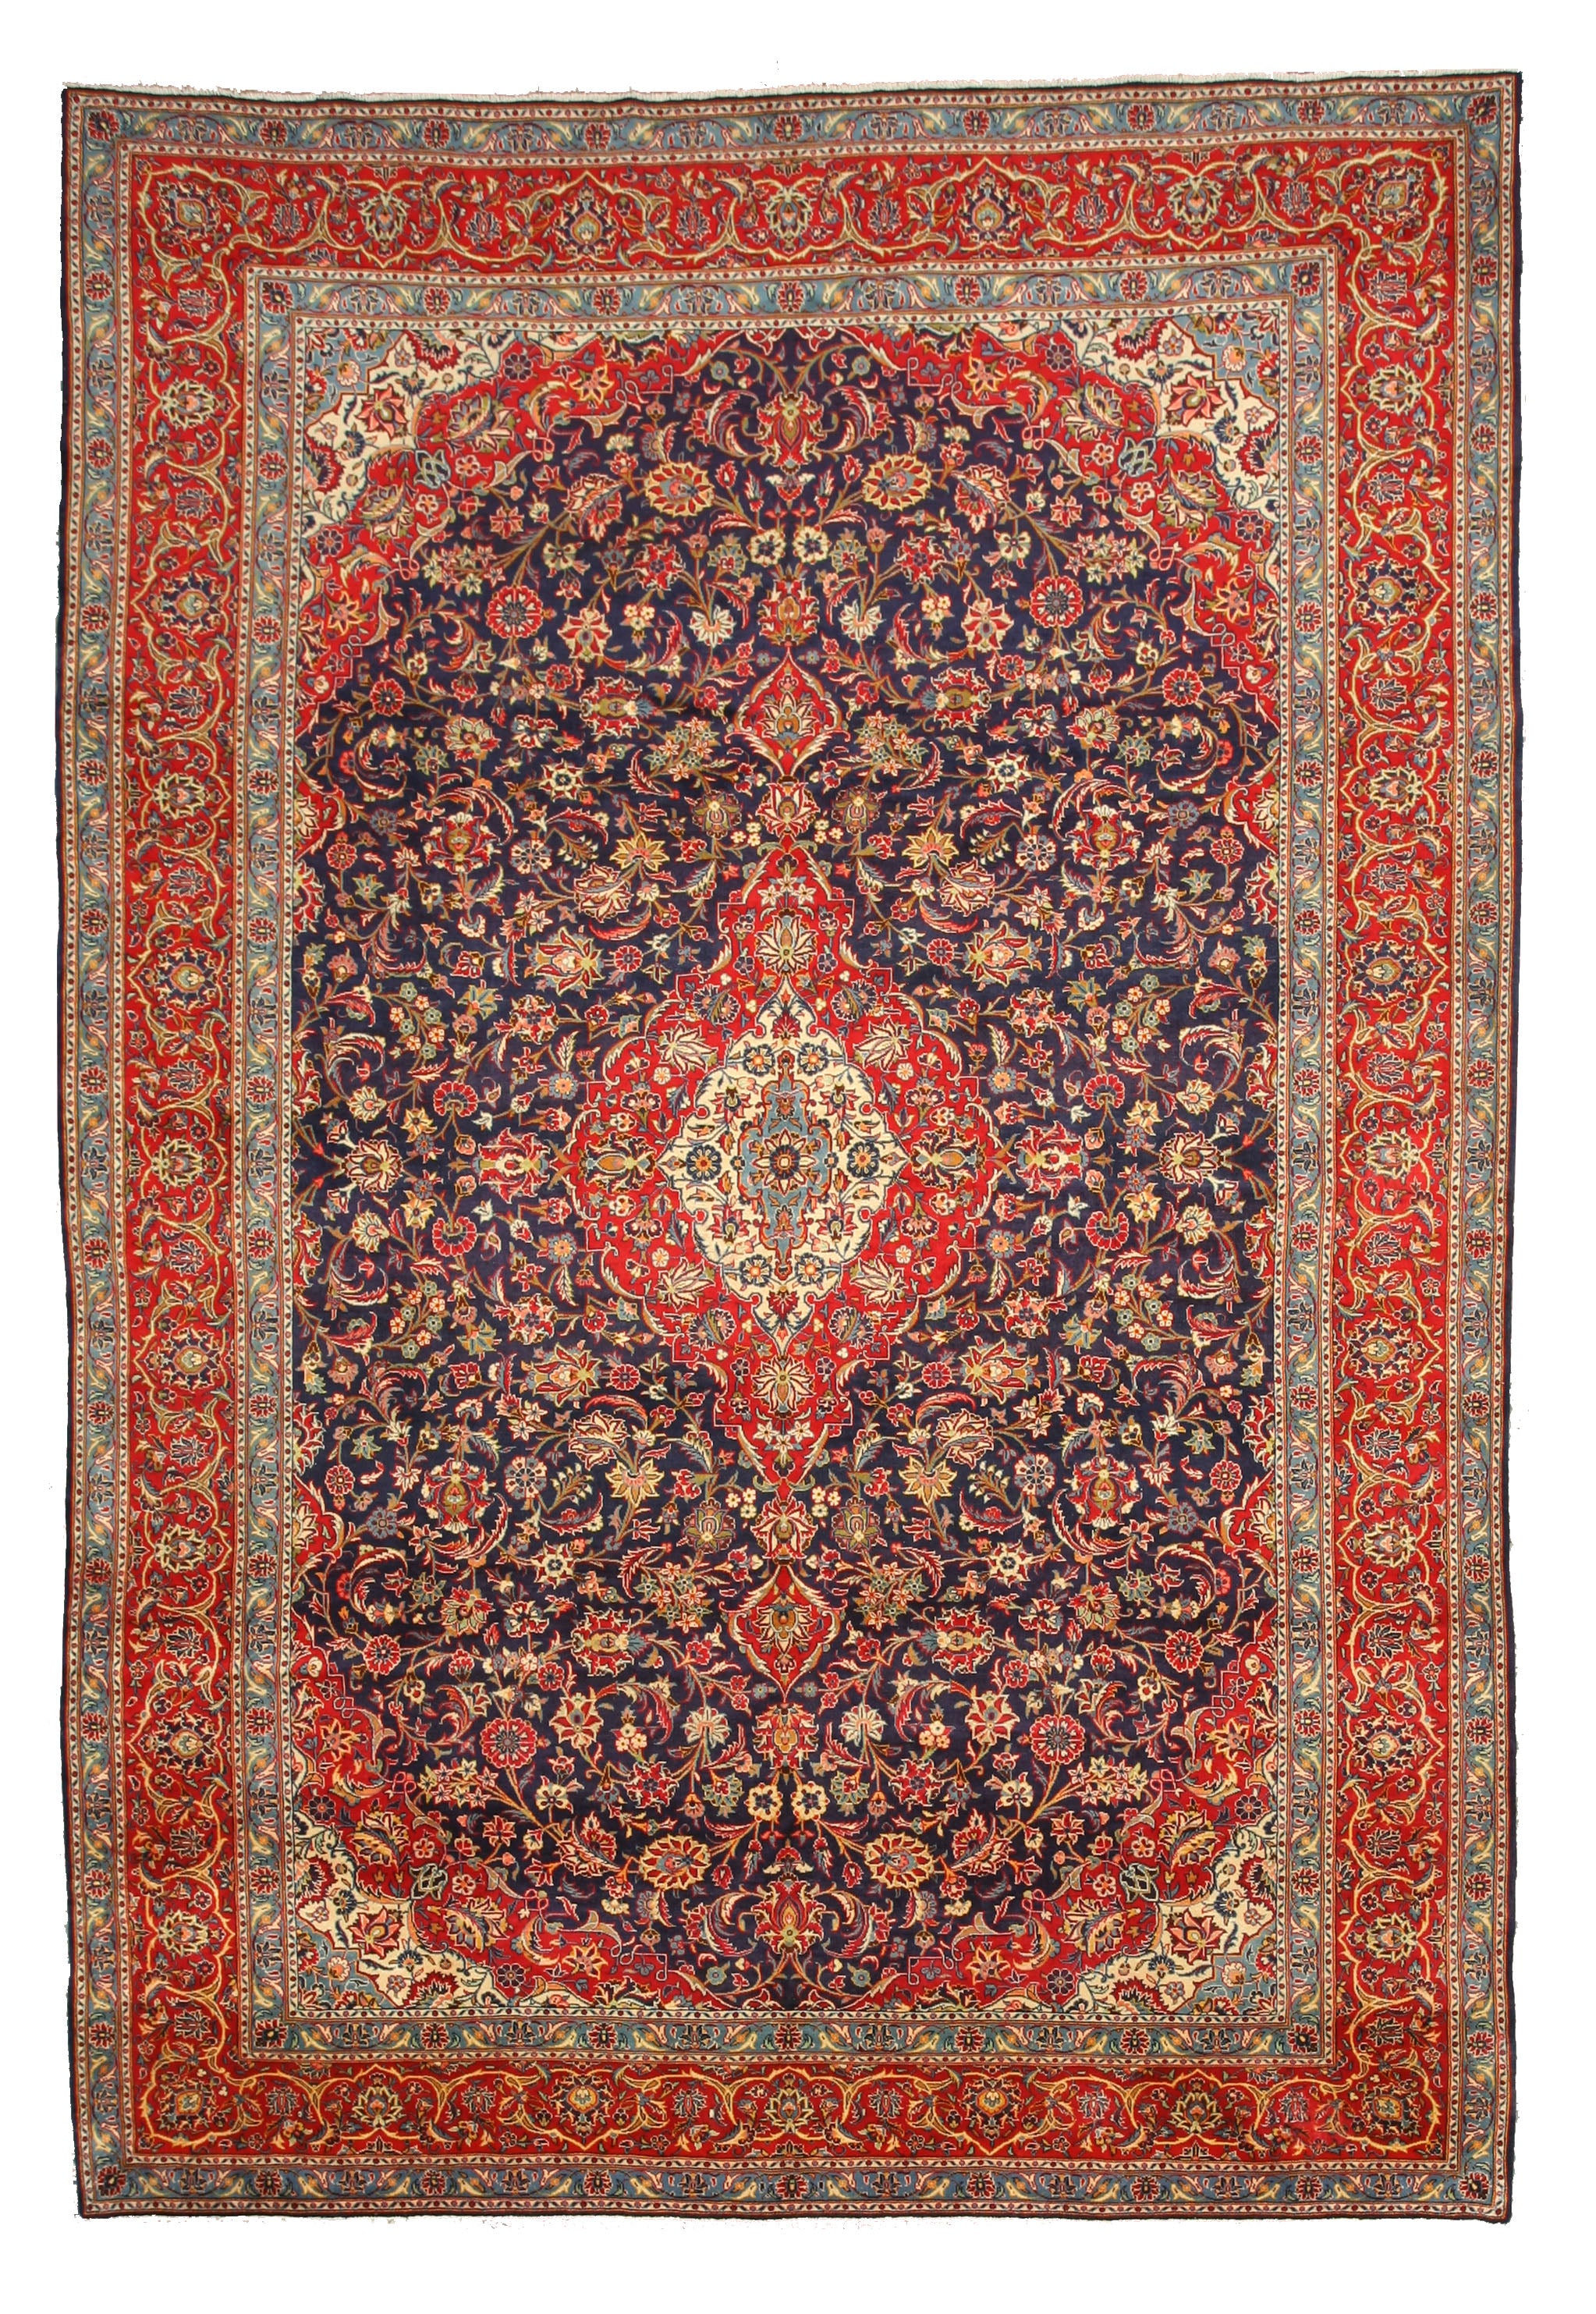 EORC Hand-knotted Wool Blue Traditional Oriental Kashan Rug